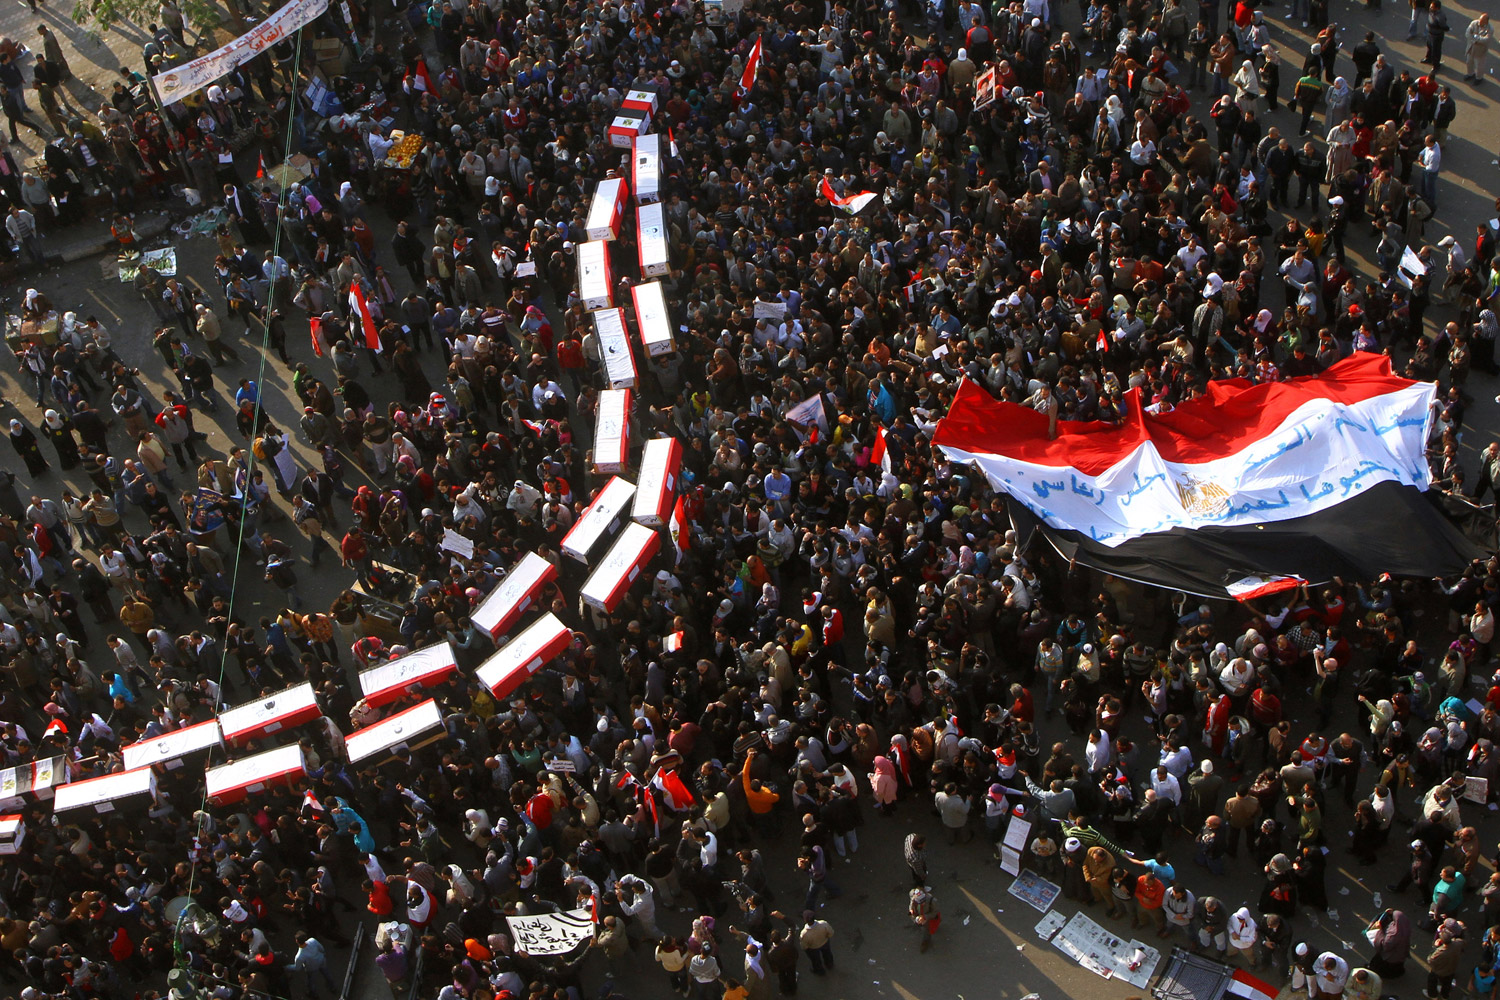 December 2, 2011. Egyptian demonstrators carry mock coffins in memory of fellow protesters who were killed during deadly clashes with security forces as they take part in a rally at Tahrir Square in Cairo.